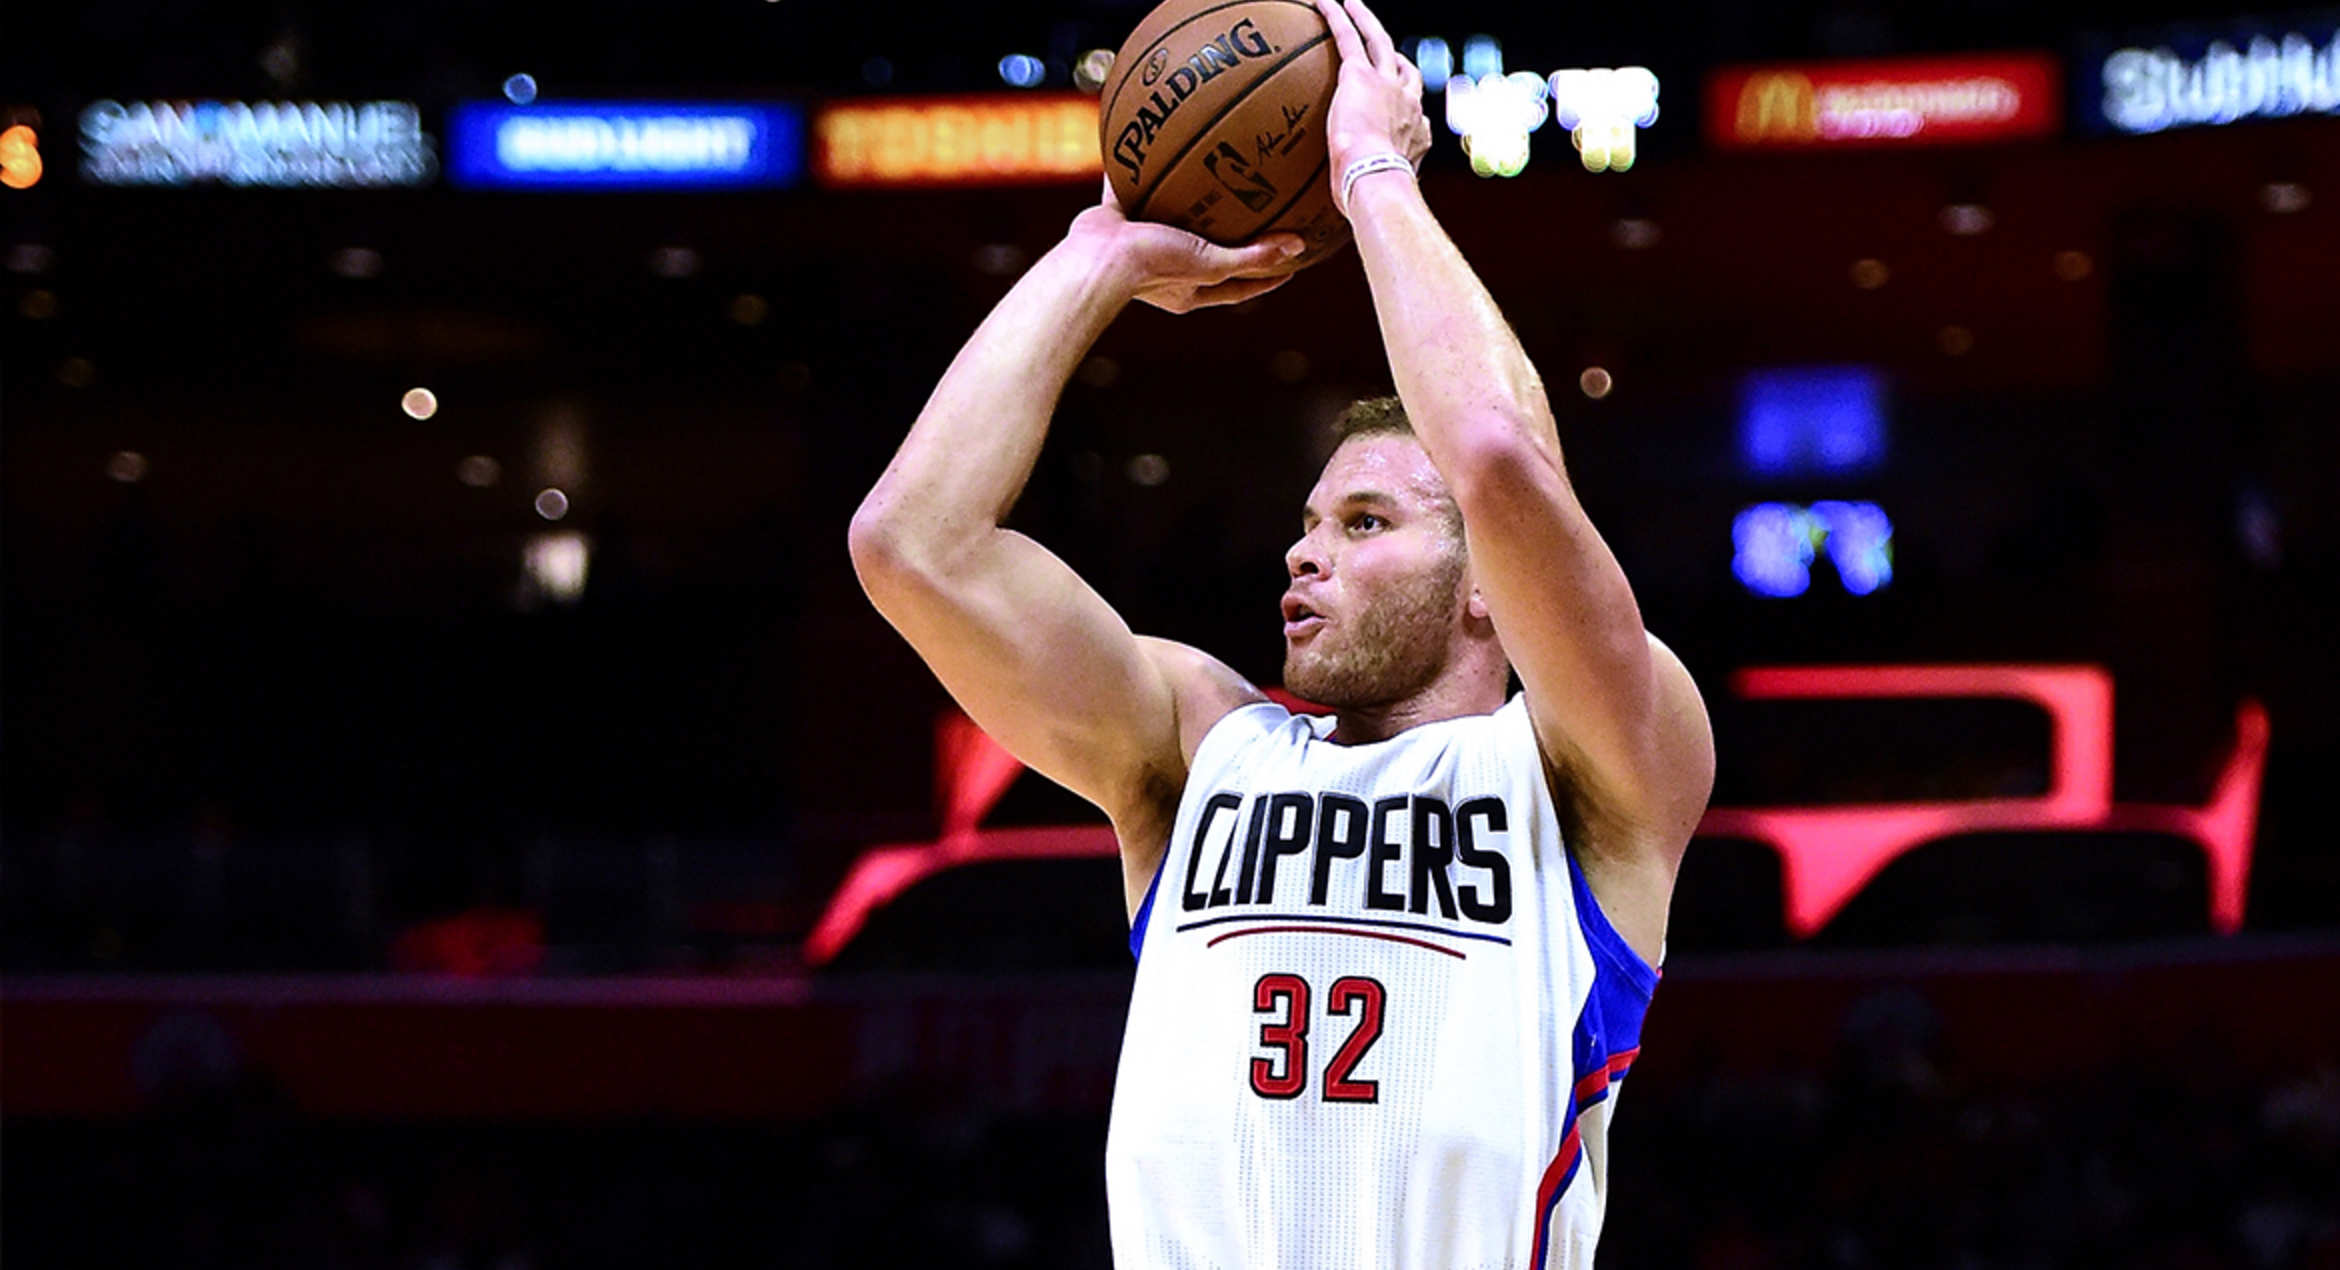 blake griffin hits twice from deep in strong preseason home opener